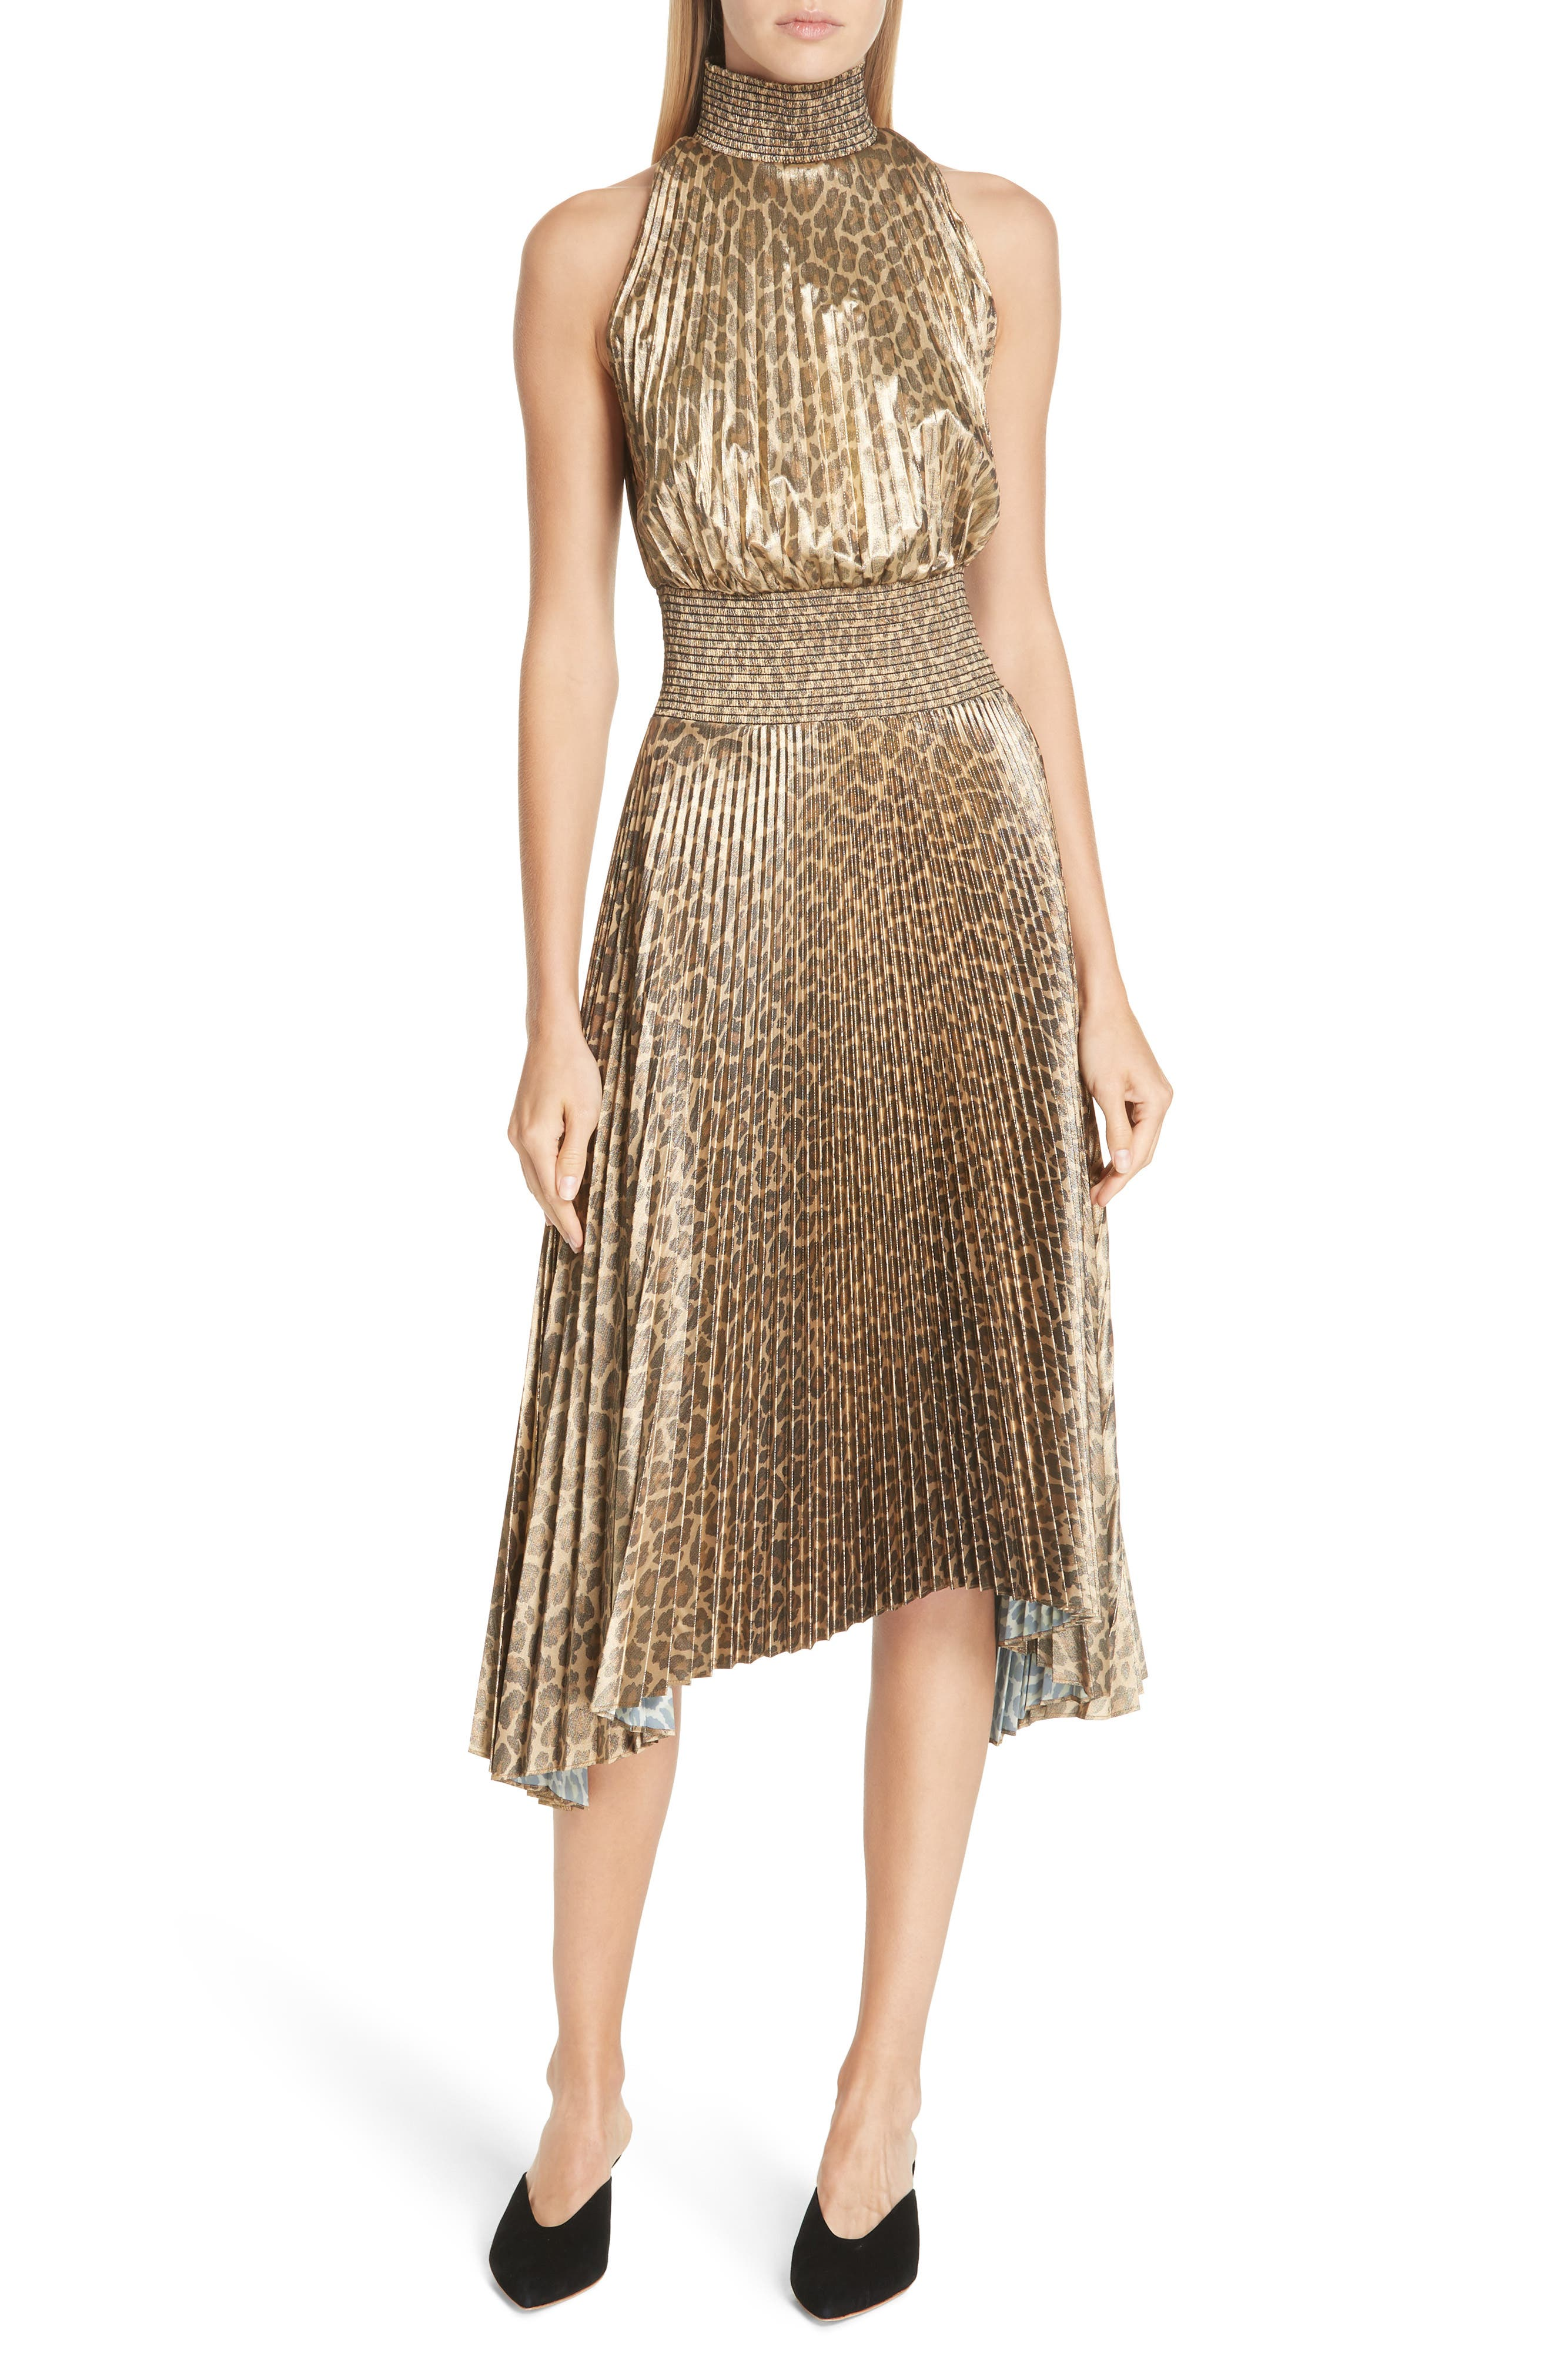 70s Prom, Formal, Evening, Party Dresses Womens A.l.c. Renzo Leopard Print Metallic Foil Dress $476.98 AT vintagedancer.com